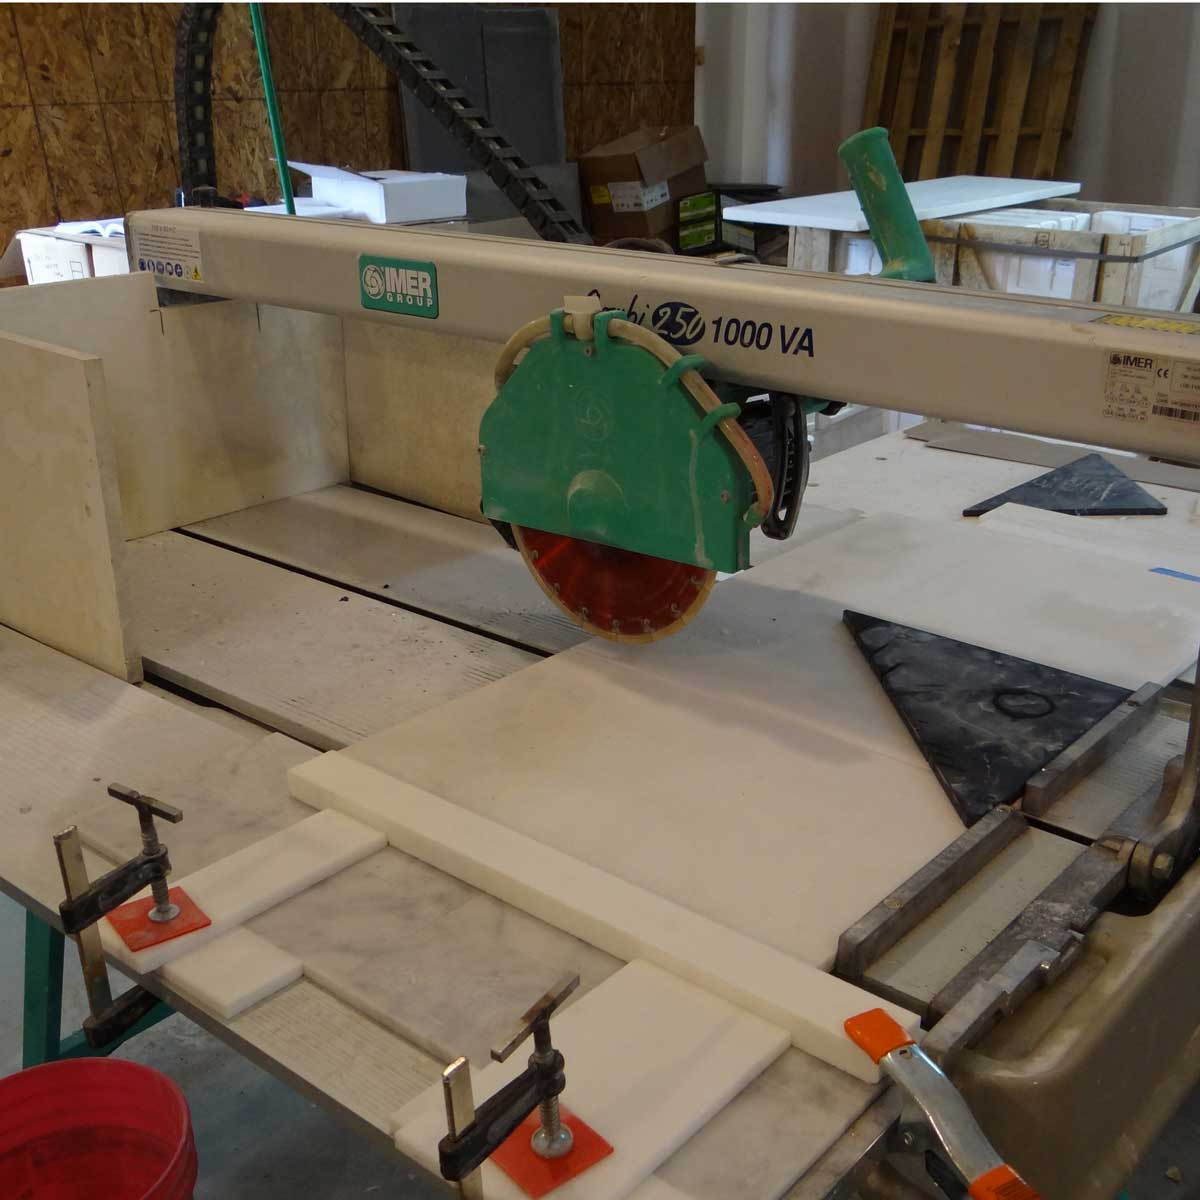 Imer Combi 250/1000VA wet tile saw cutting diagonal